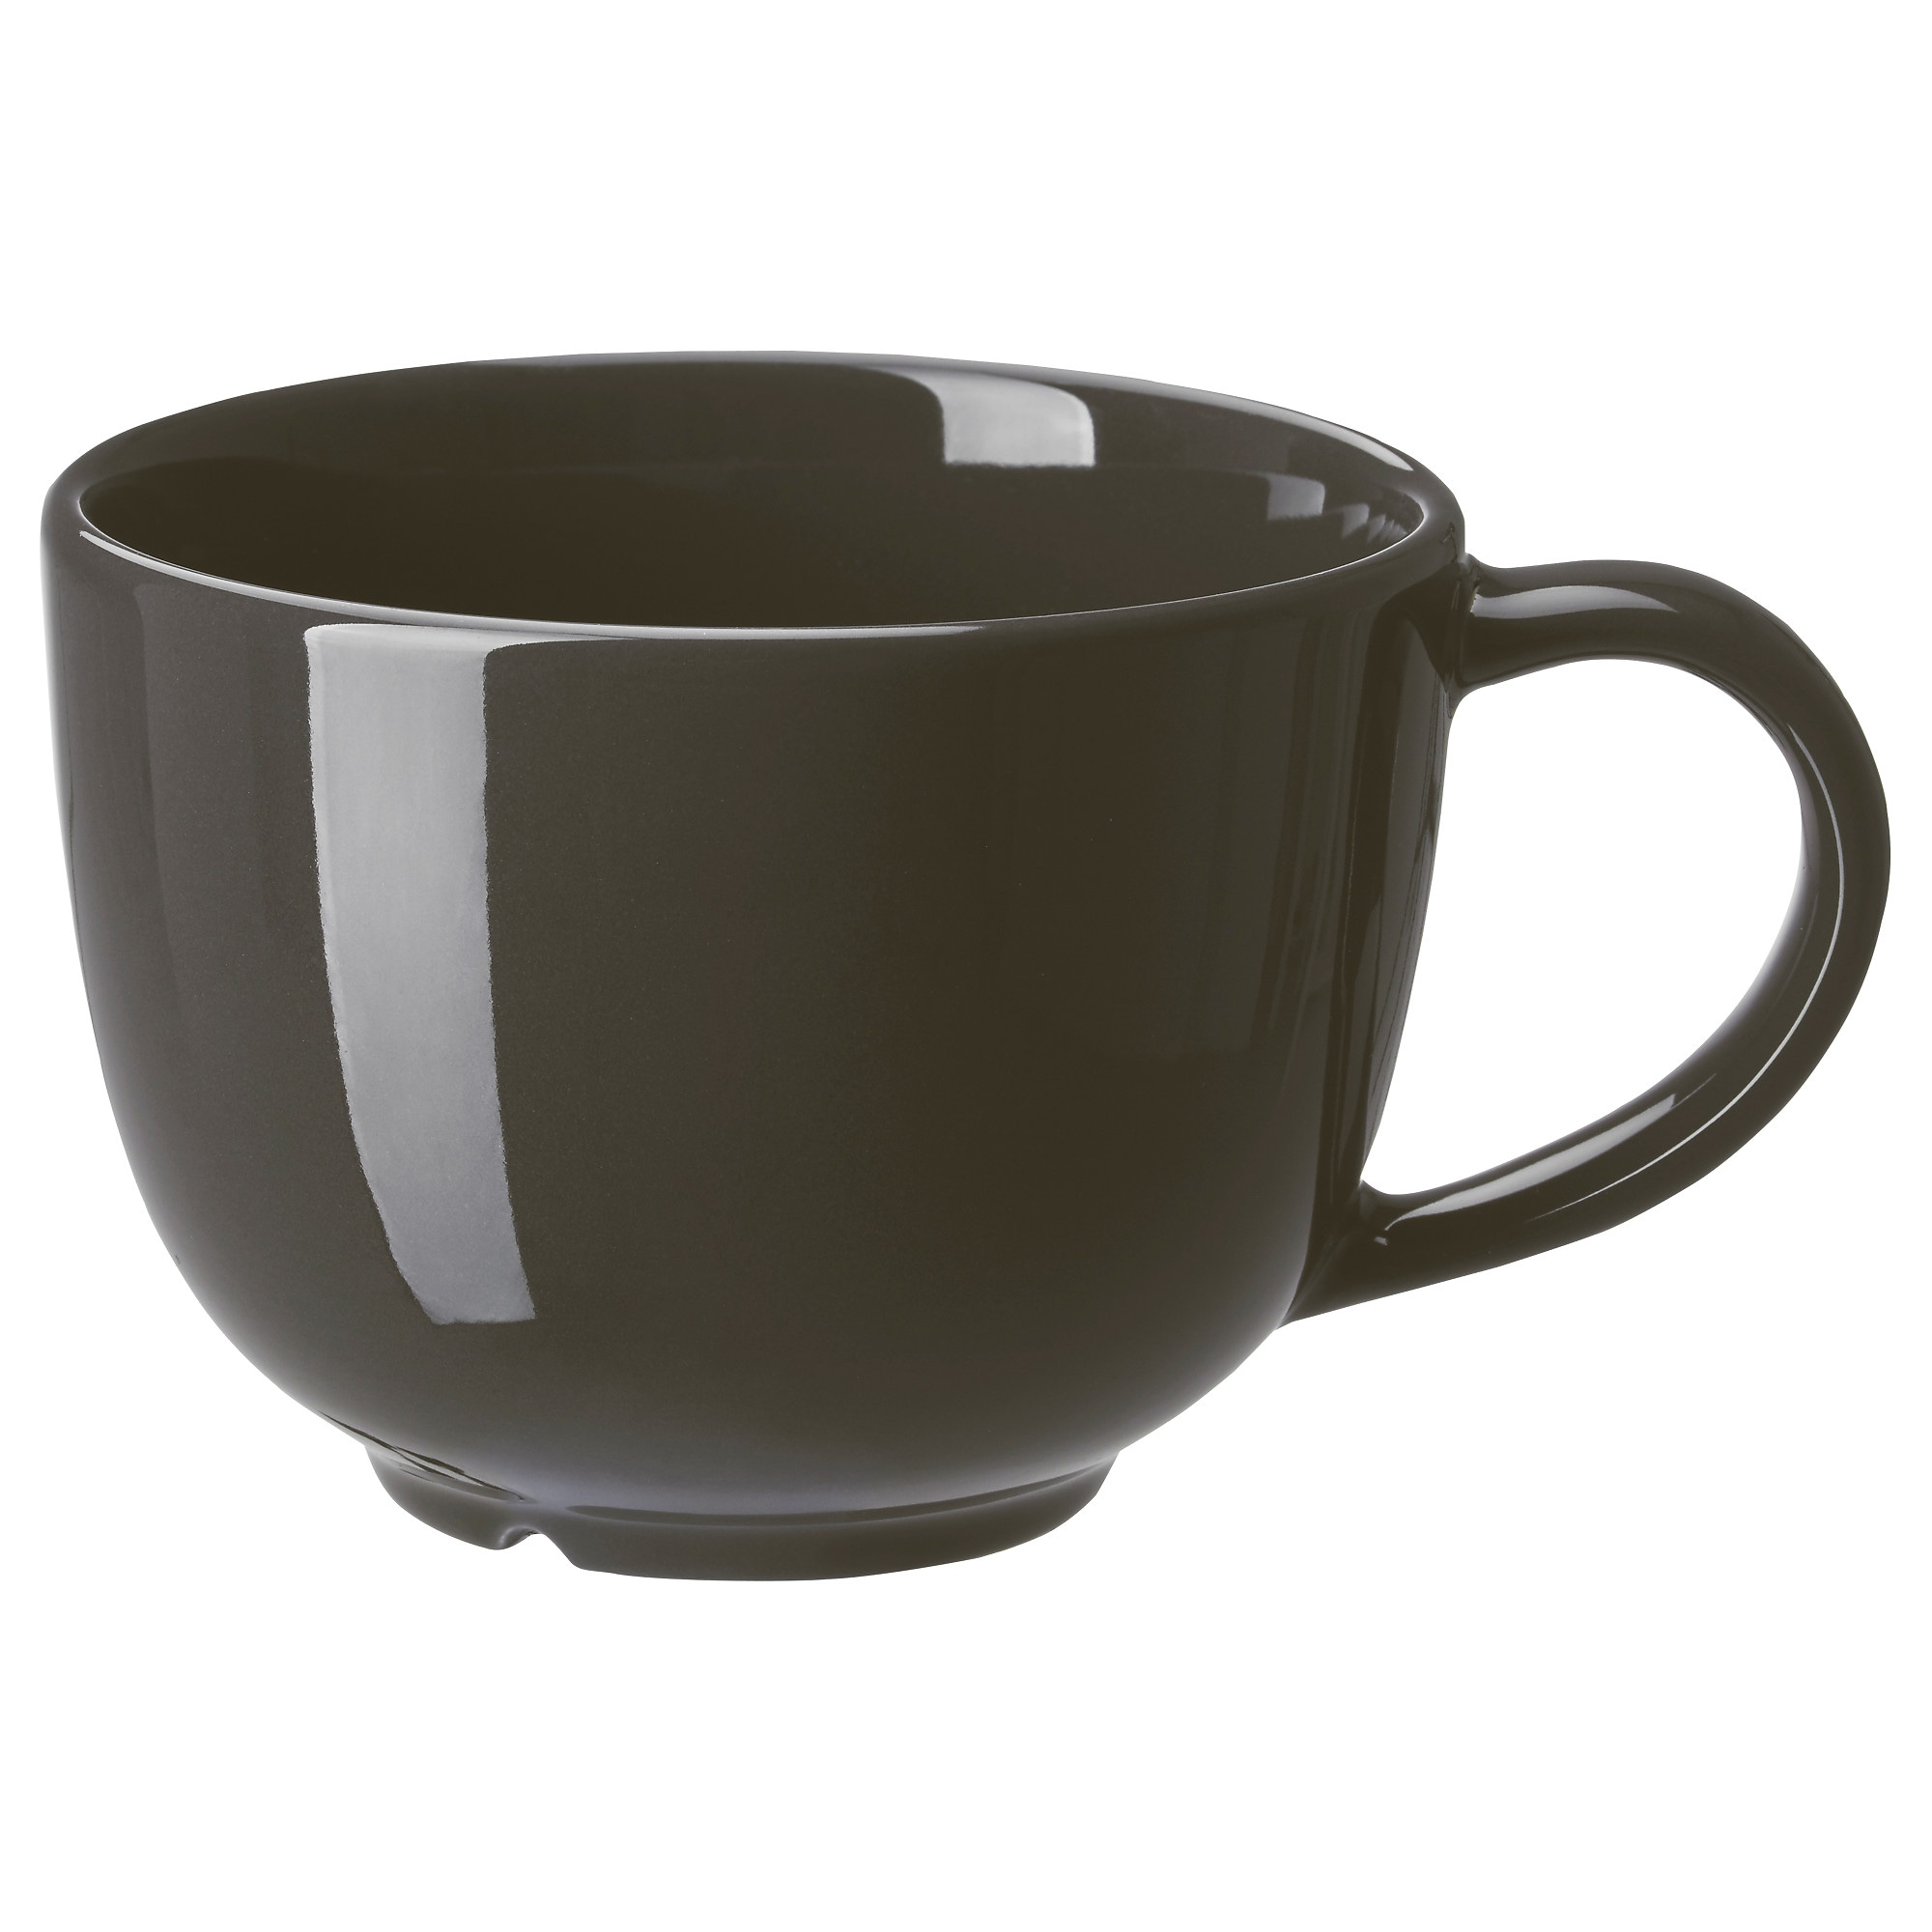 vardagen mug. coffee mugs  tea cups  ikea